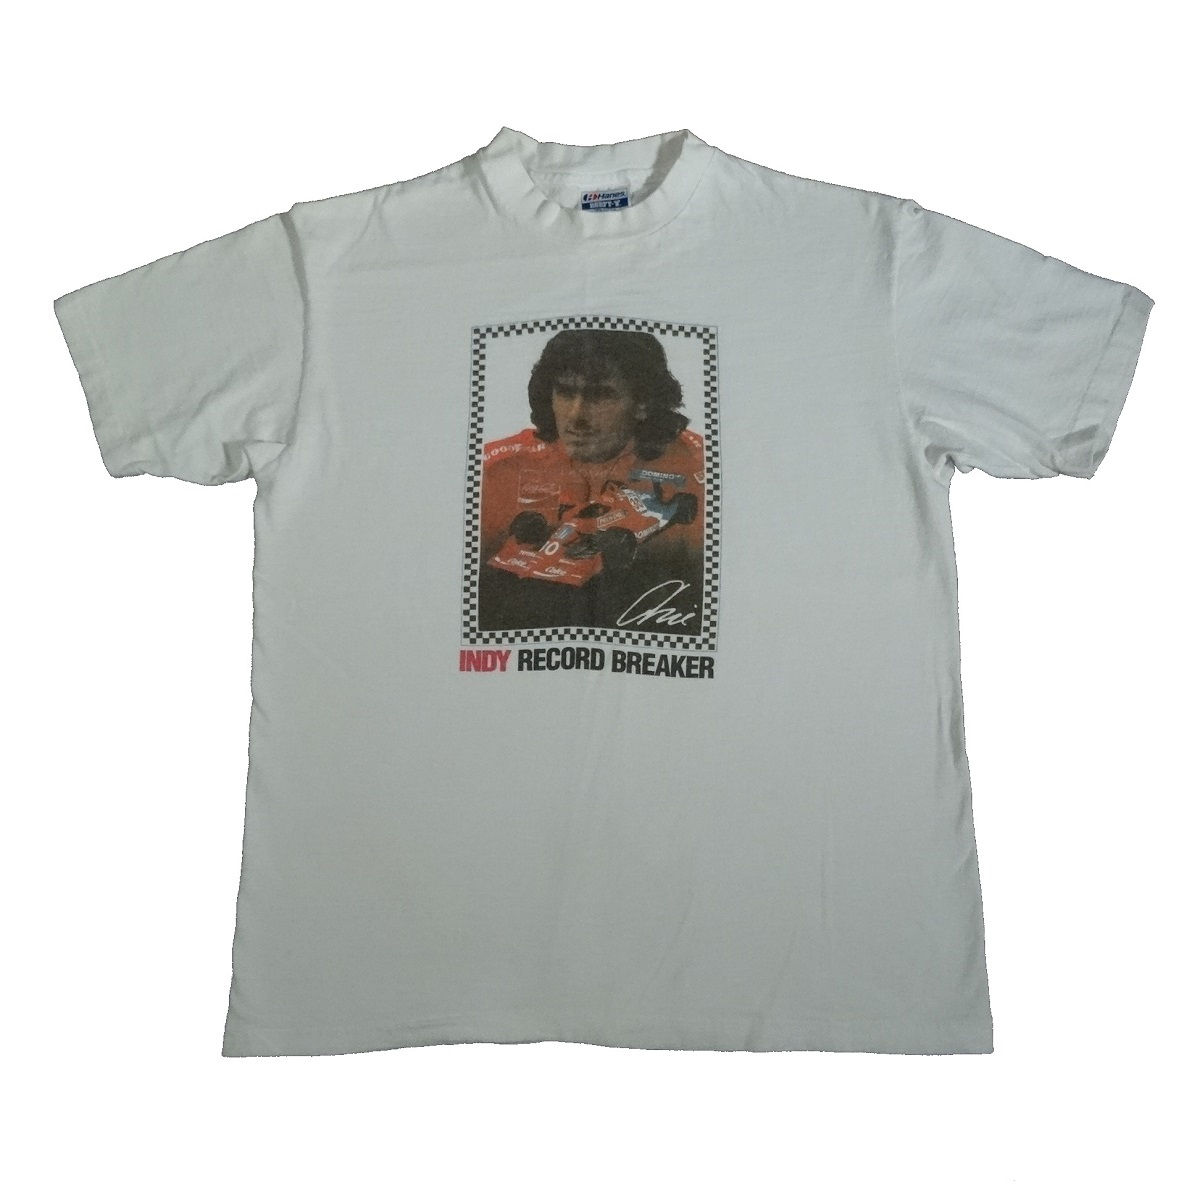 Arie Luyendyk vintage 90s t shirt front